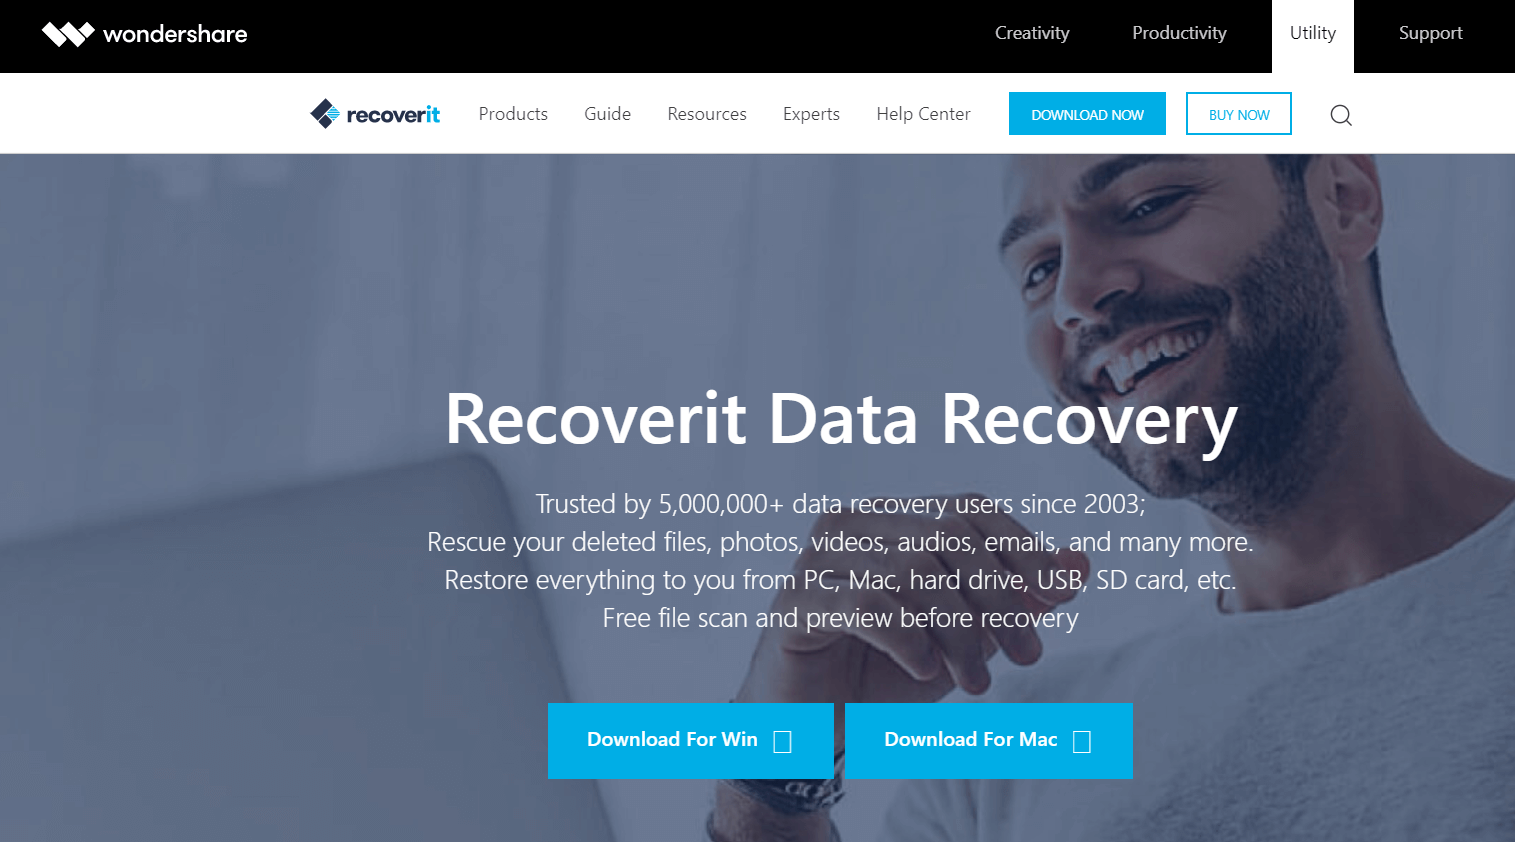 Wondershare - File Recovery Software